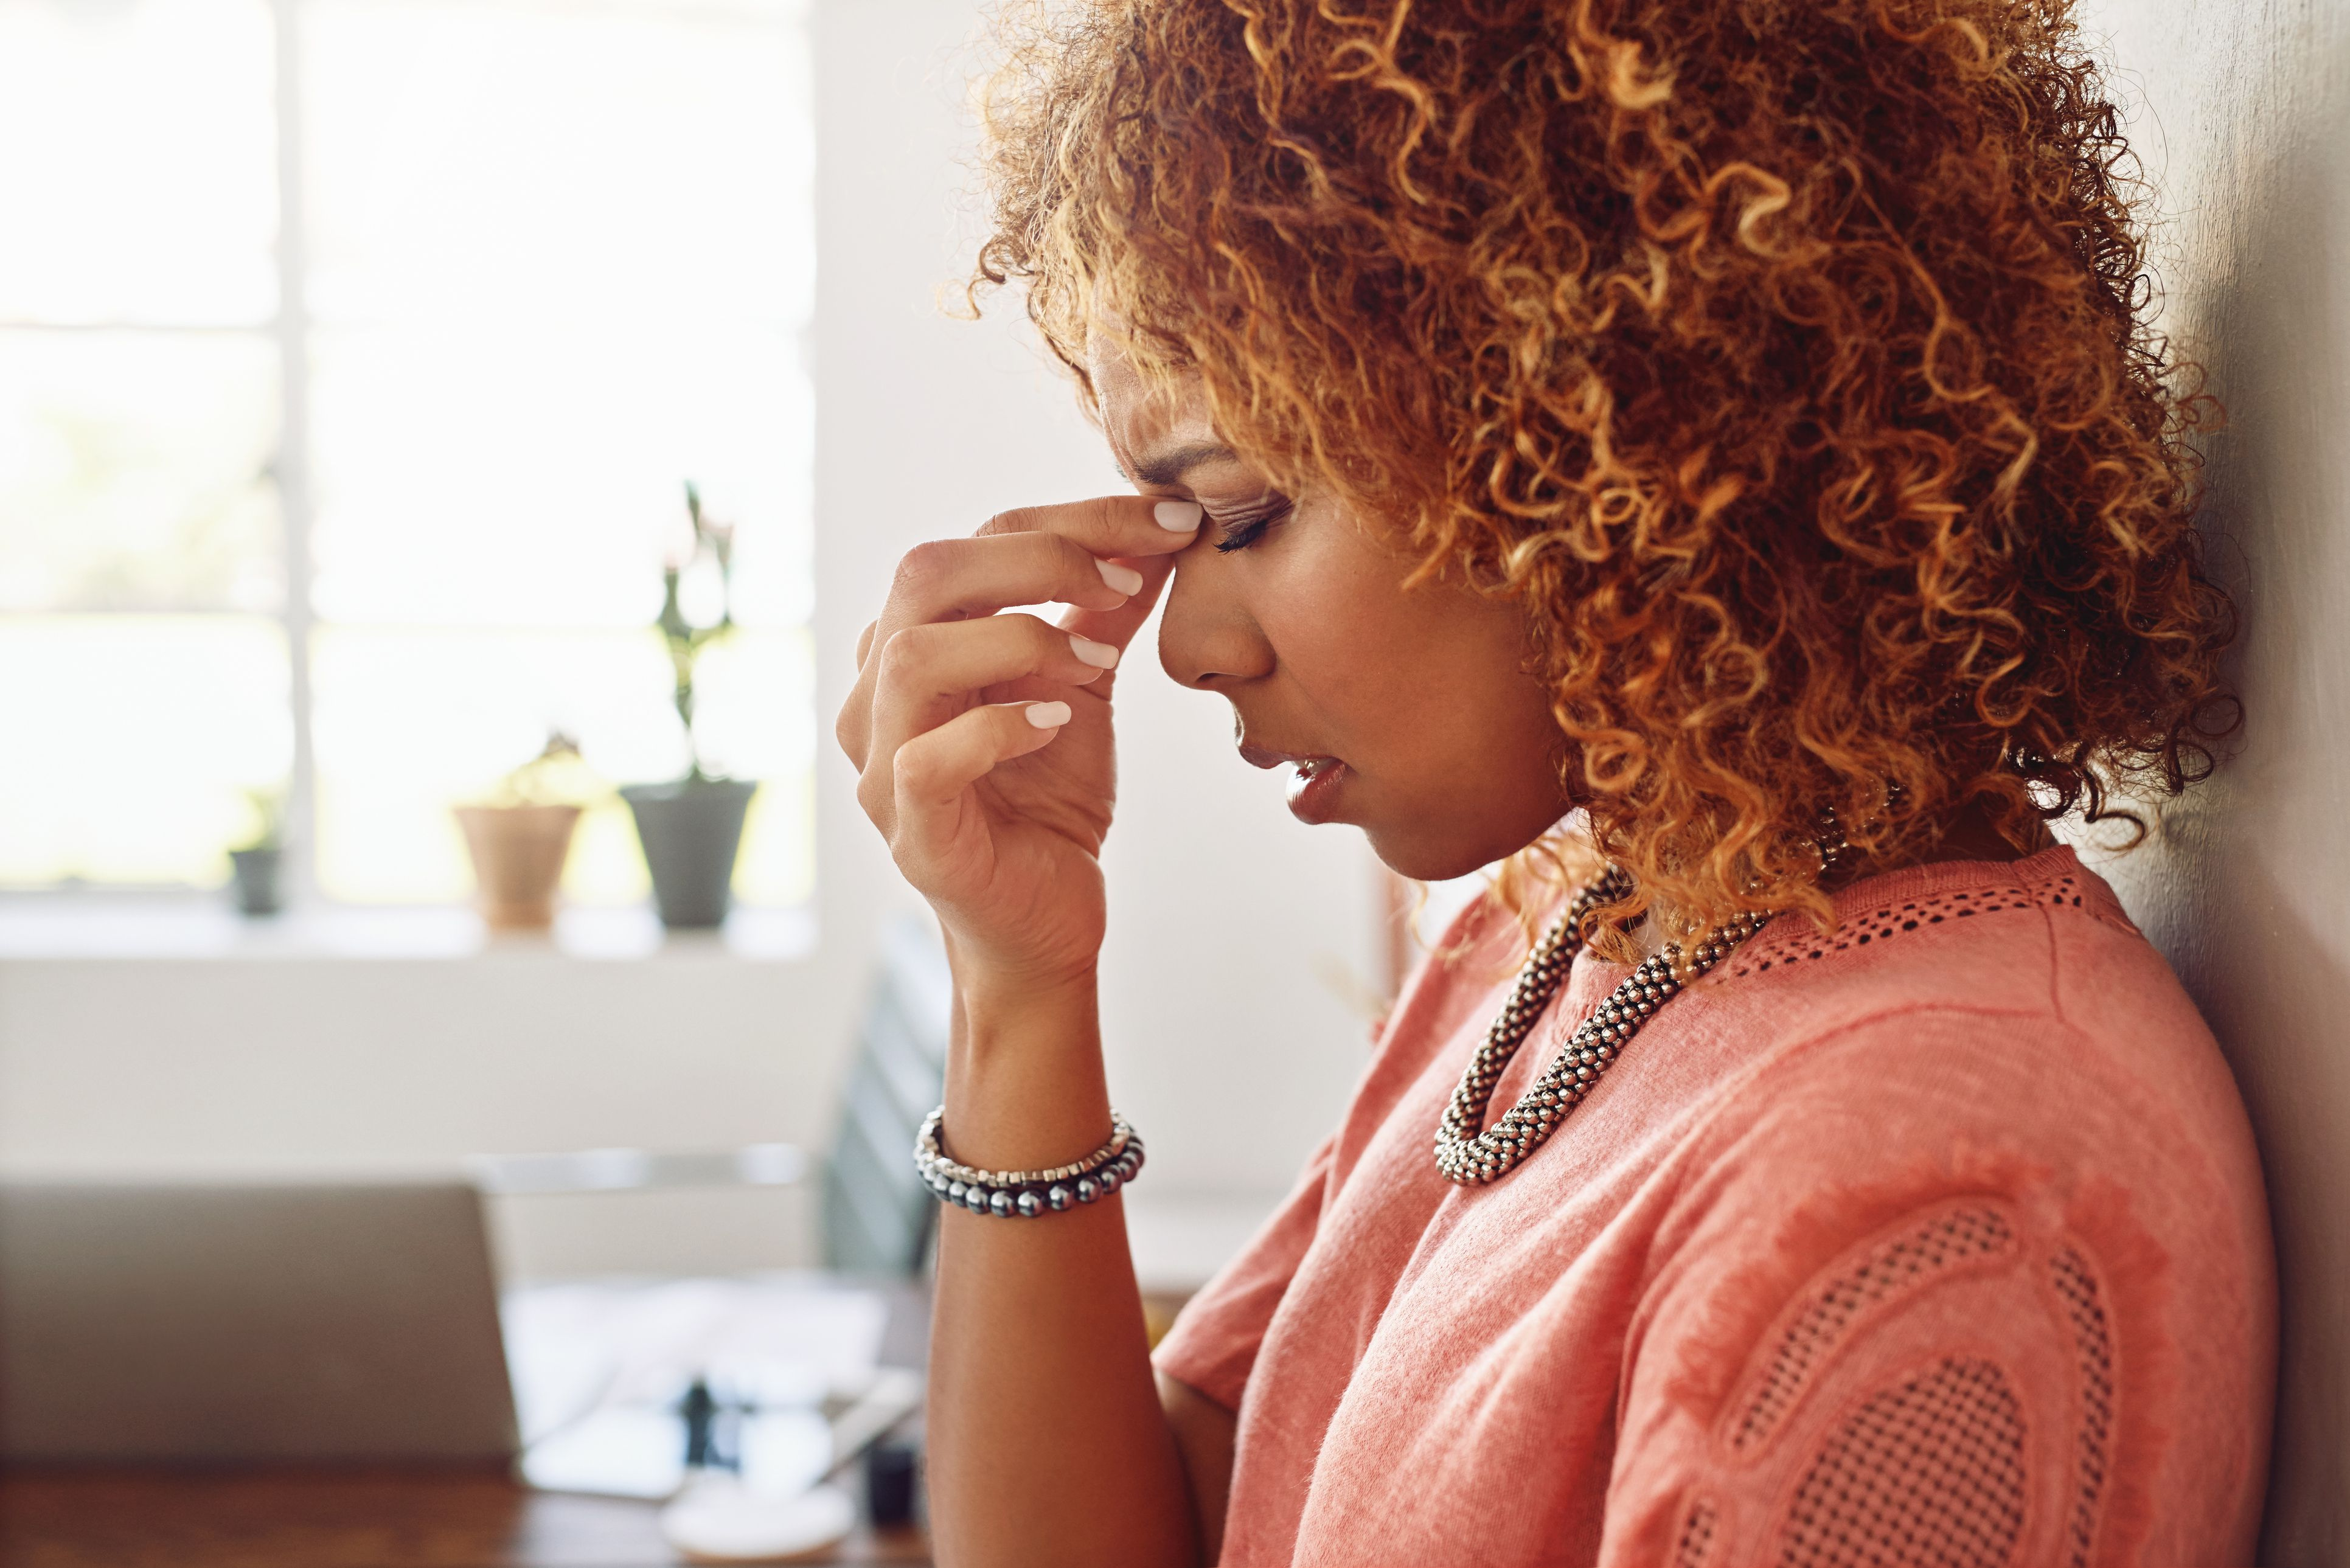 7 mon Signs and Symptoms of Nicotine Withdrawal